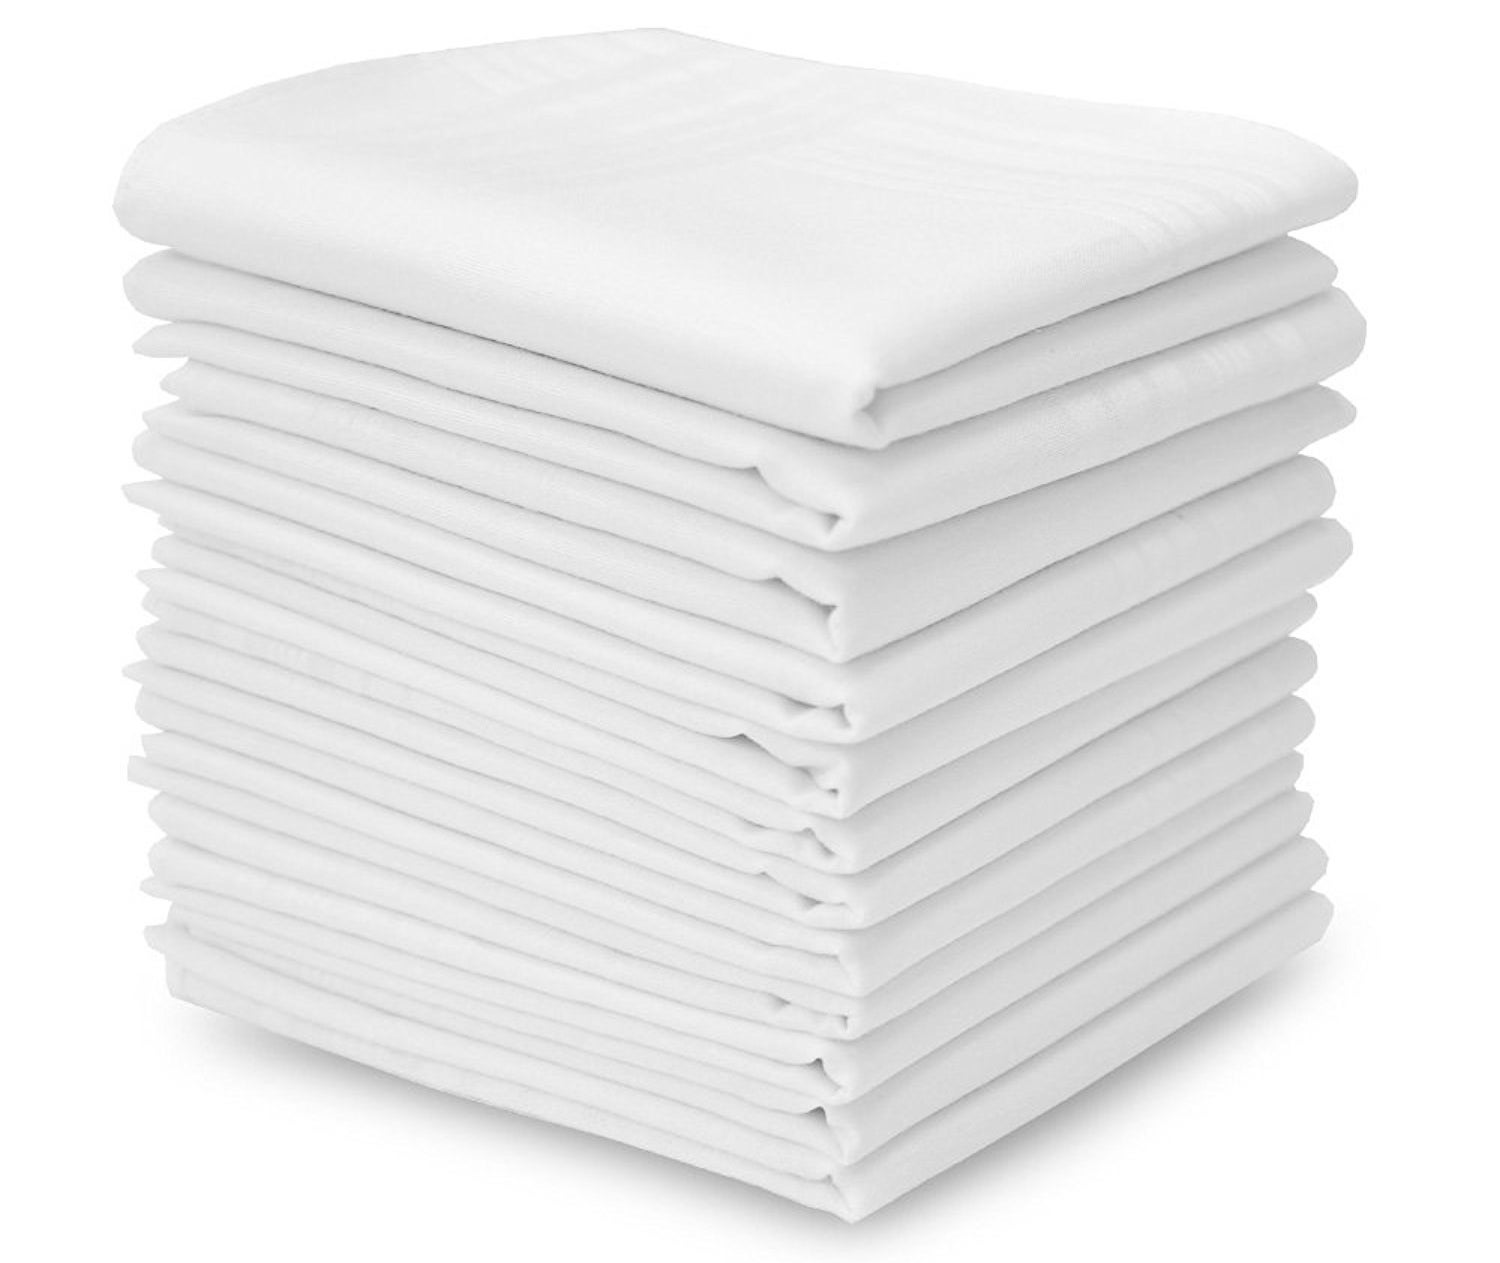 A stack of folded handkerchiefs.